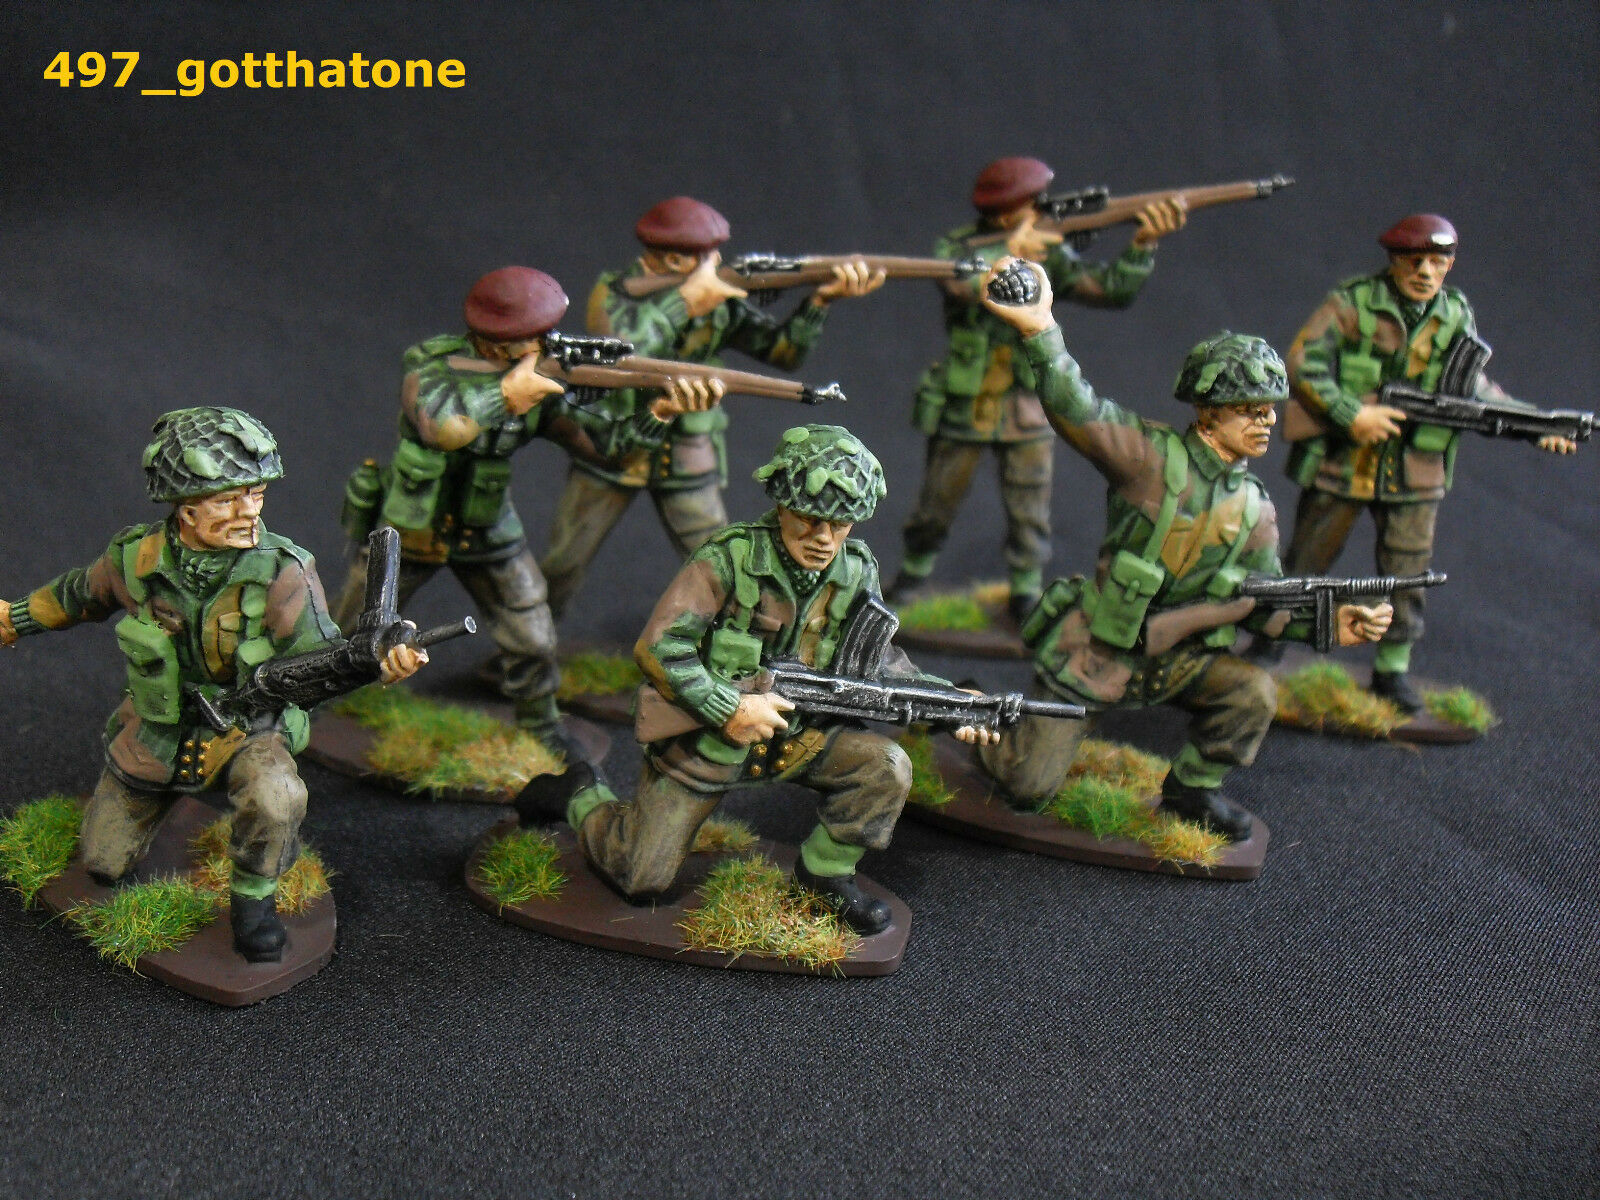 Airfix 1 32 congreened and professionally painted British paratroops ww2 . 54mm